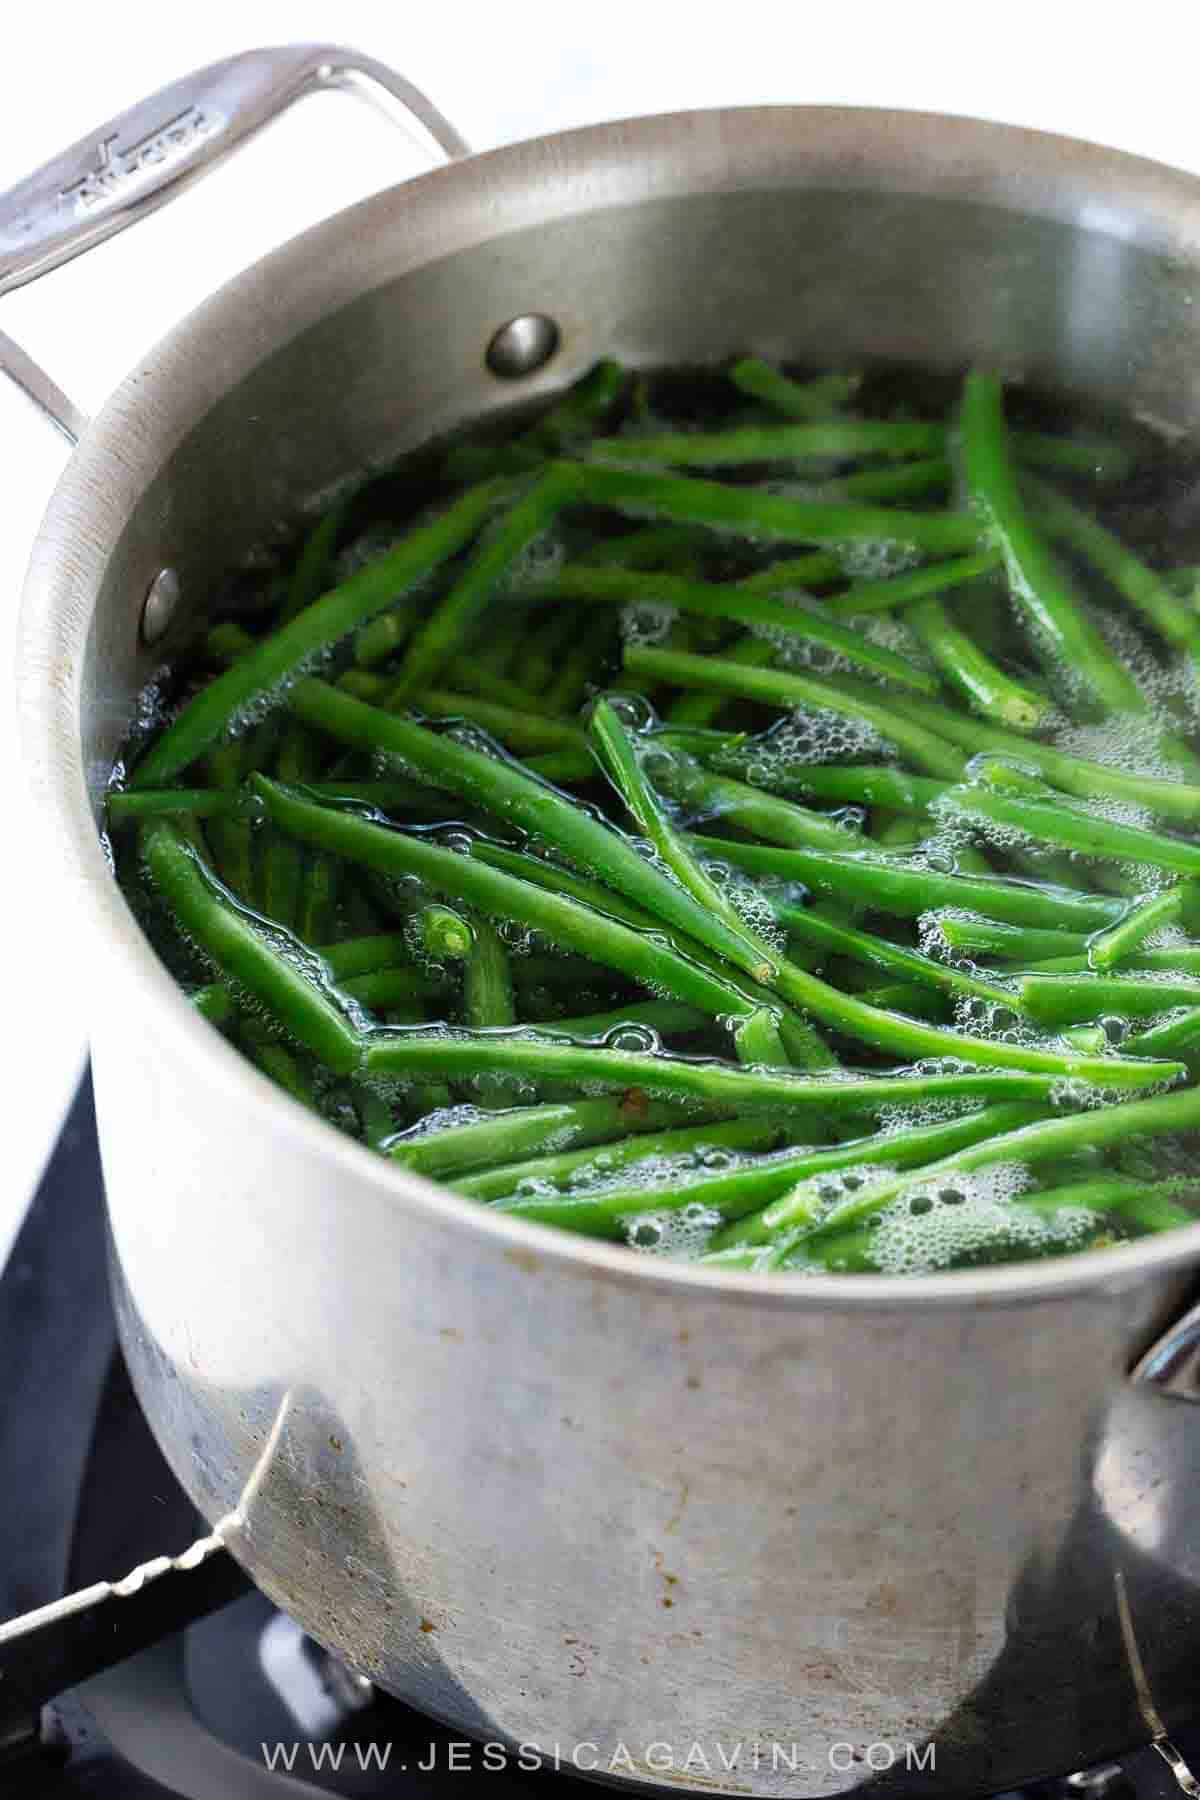 Learn how to cook green beans to achieve the perfect texture and color every time. The blanch and shock method is the key to bright and crunchy beans. #greenbeans #howtocook #cooking #foodscience